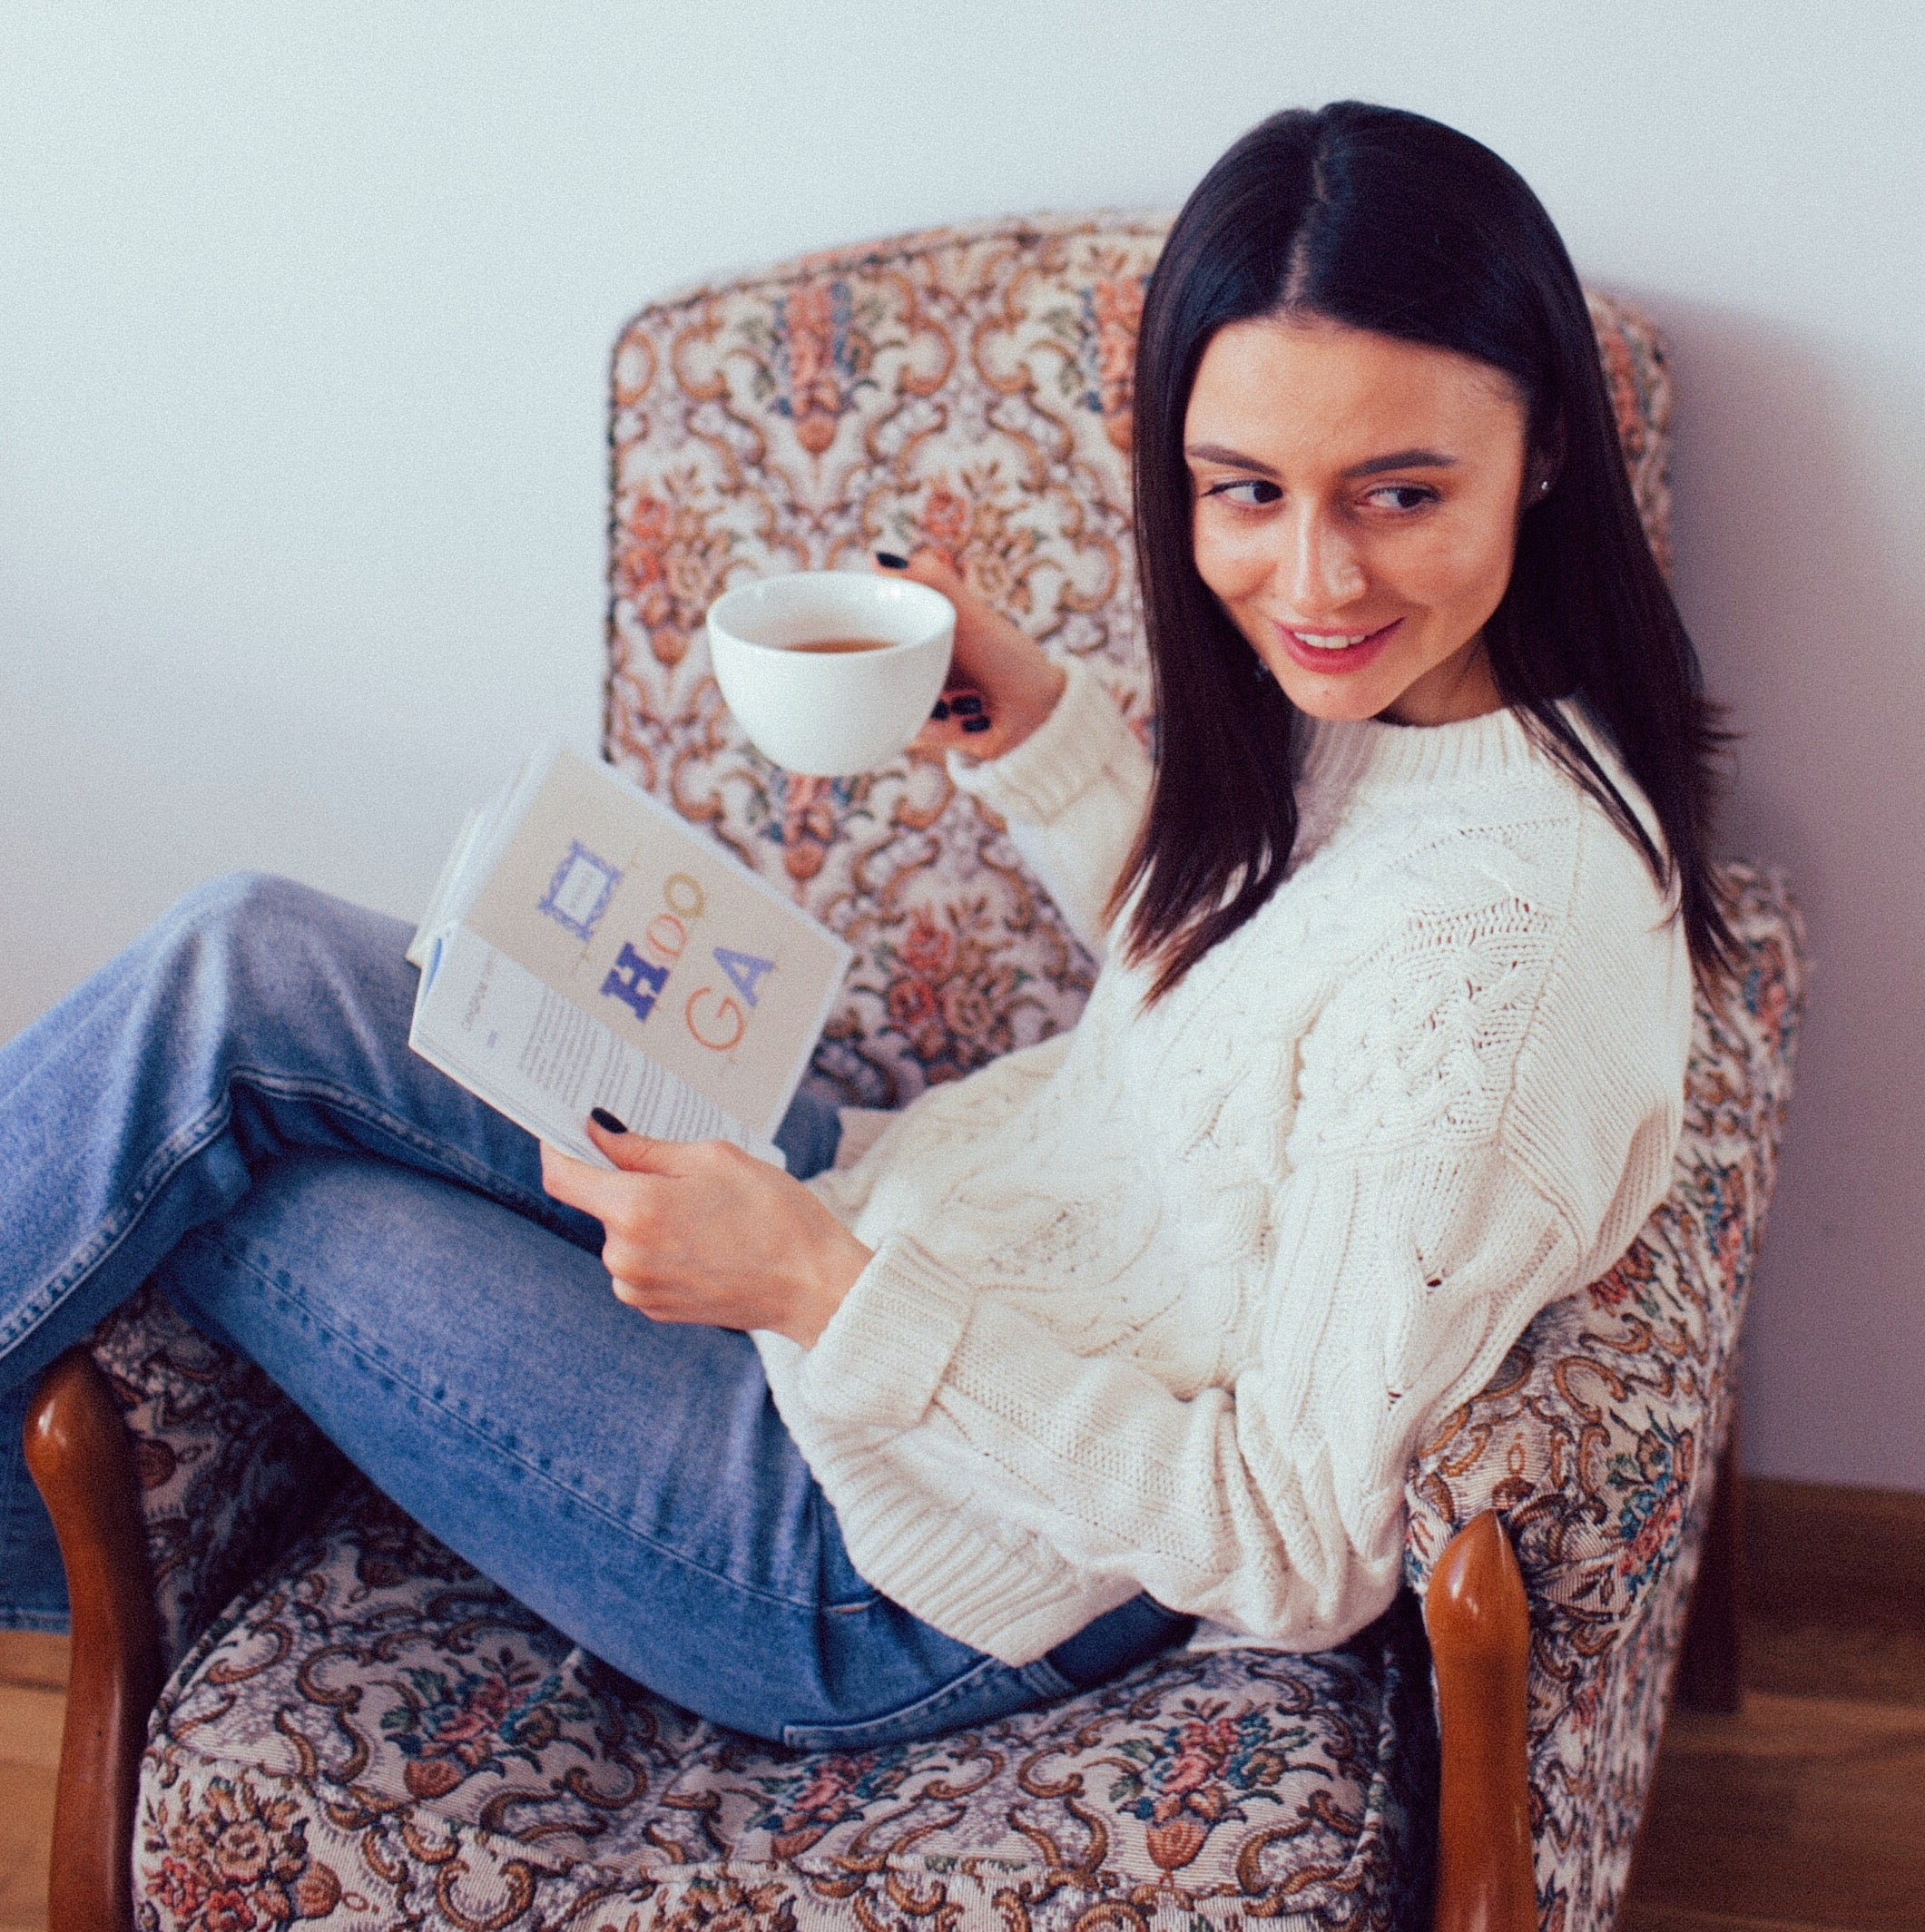 girl seating in the chair holding a book in one hand and a cup of tea in another